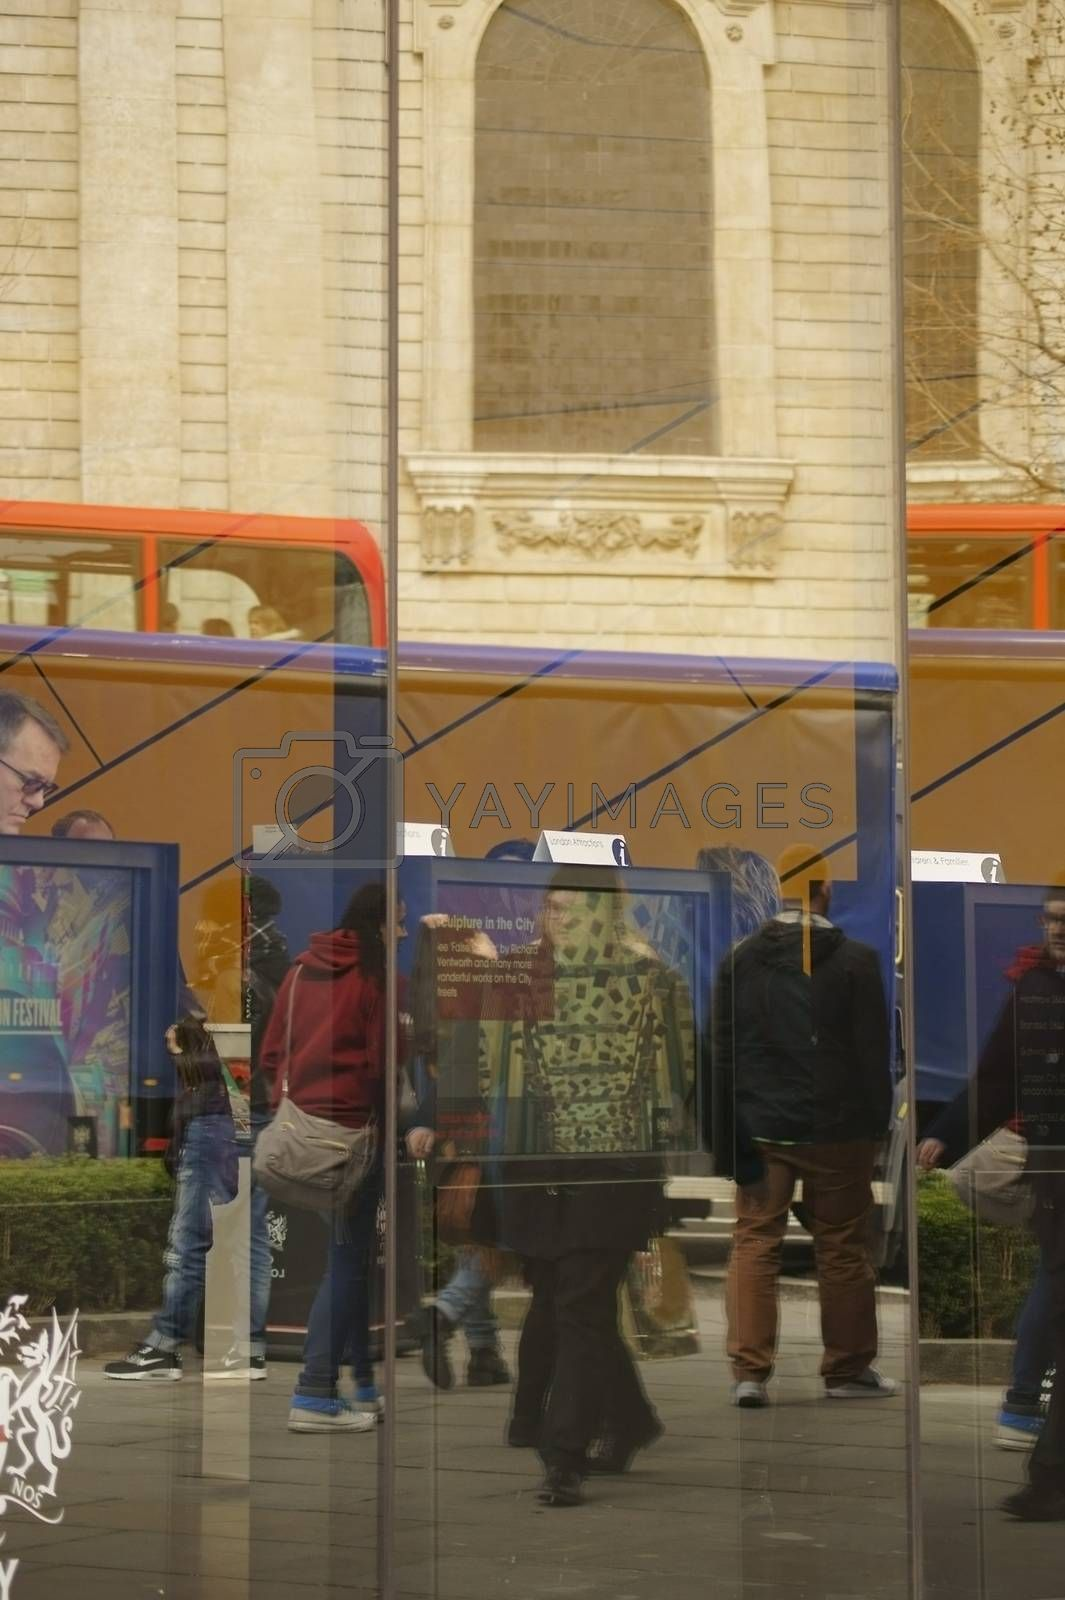 London, UK - April 01, 2015: The Reflections of tourists and red double-decker buses in the windows of an information center at the St. Paul's Cathedral on April 01, 2015 in London.